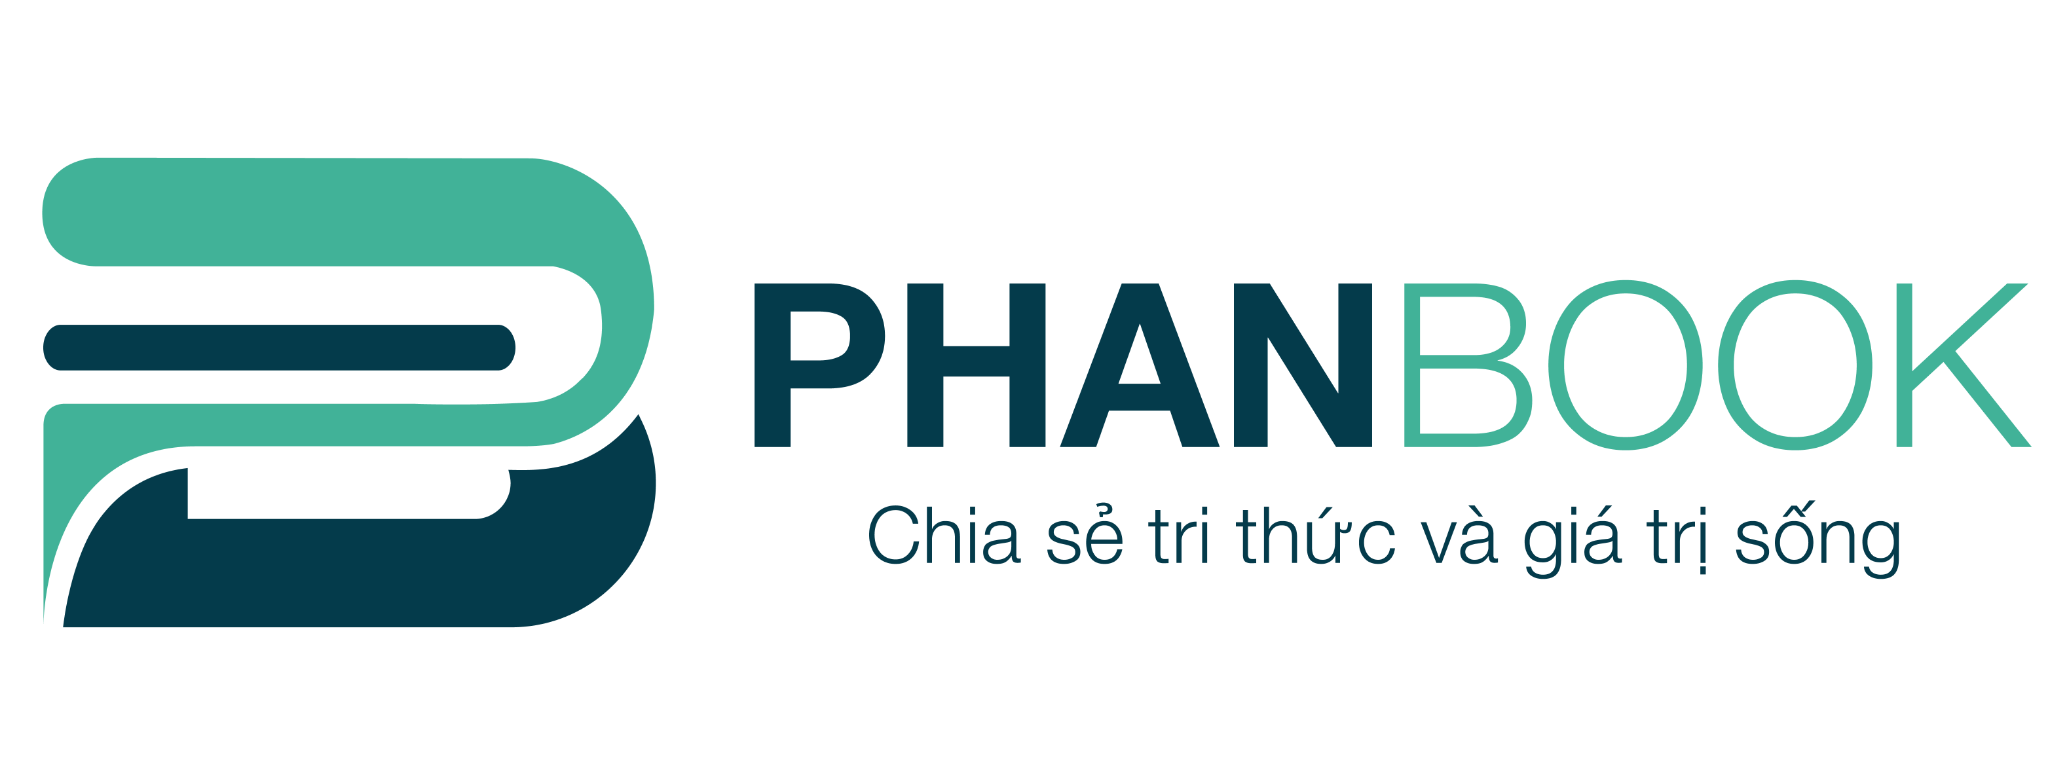 phanbook vn